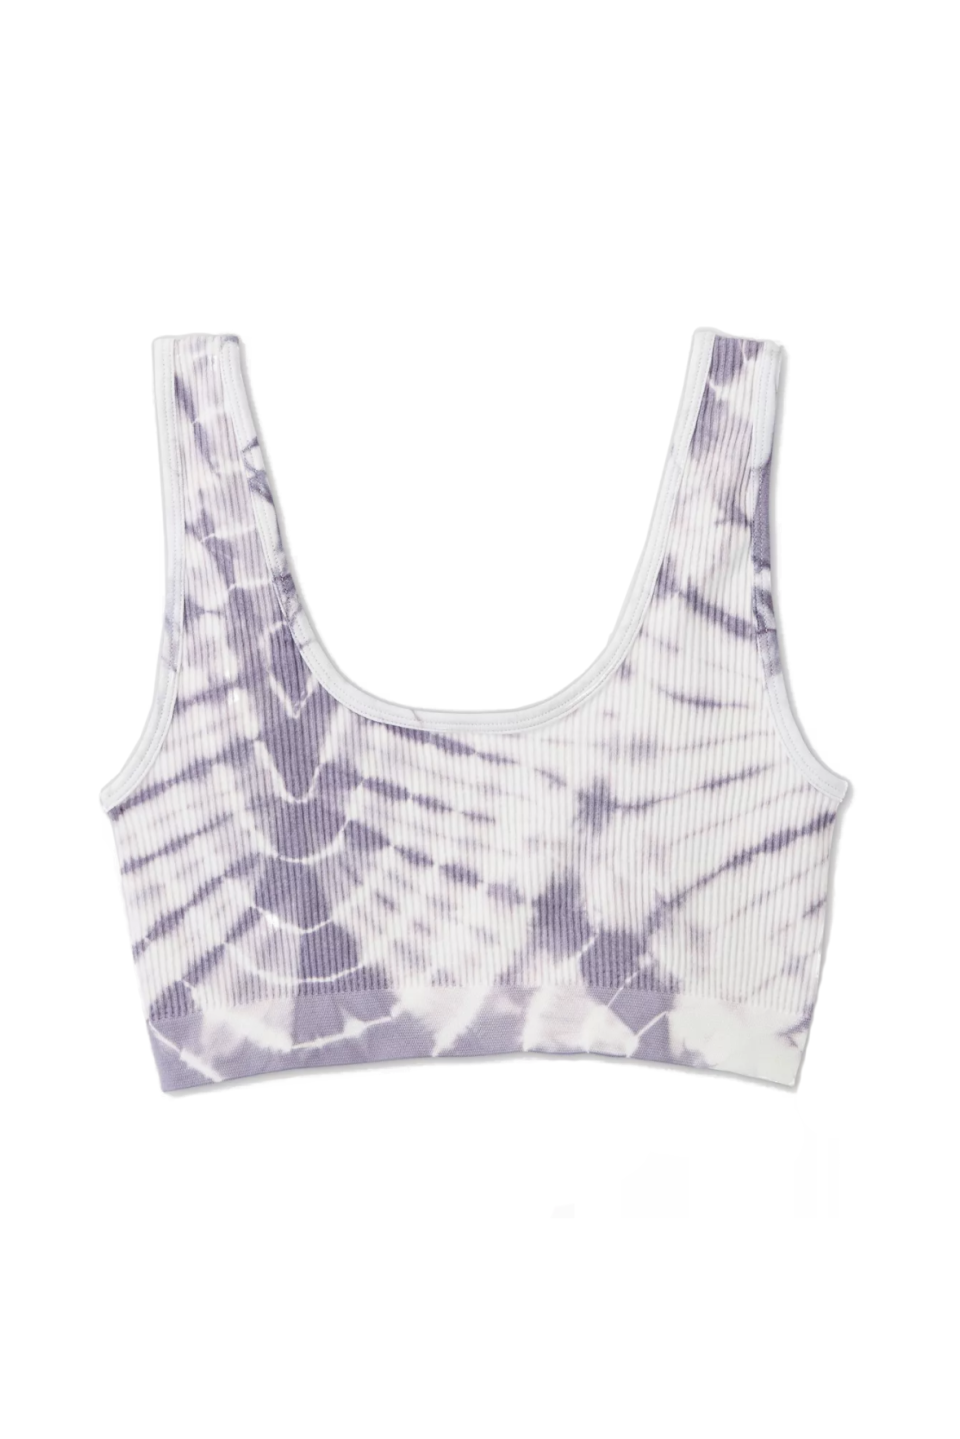 "<p><strong>Colsie</strong></p><p>target.com</p><p><strong>$10.00</strong></p><p><a href=""https://www.target.com/p/women-39-s-scoop-neck-bralette-colsie-8482-bright-green-xl/-/A-78061623"" rel=""nofollow noopener"" target=""_blank"" data-ylk=""slk:SHOP IT"" class=""link rapid-noclick-resp"">SHOP IT</a></p><p>When it comes to undergarments, you value comfort and affordability. This $10 scoop neck style is for you because it's an easy pullover style and isn't padded. The soft material makes it perfect for layering underneath your summer tees or fall sweaters.</p>"